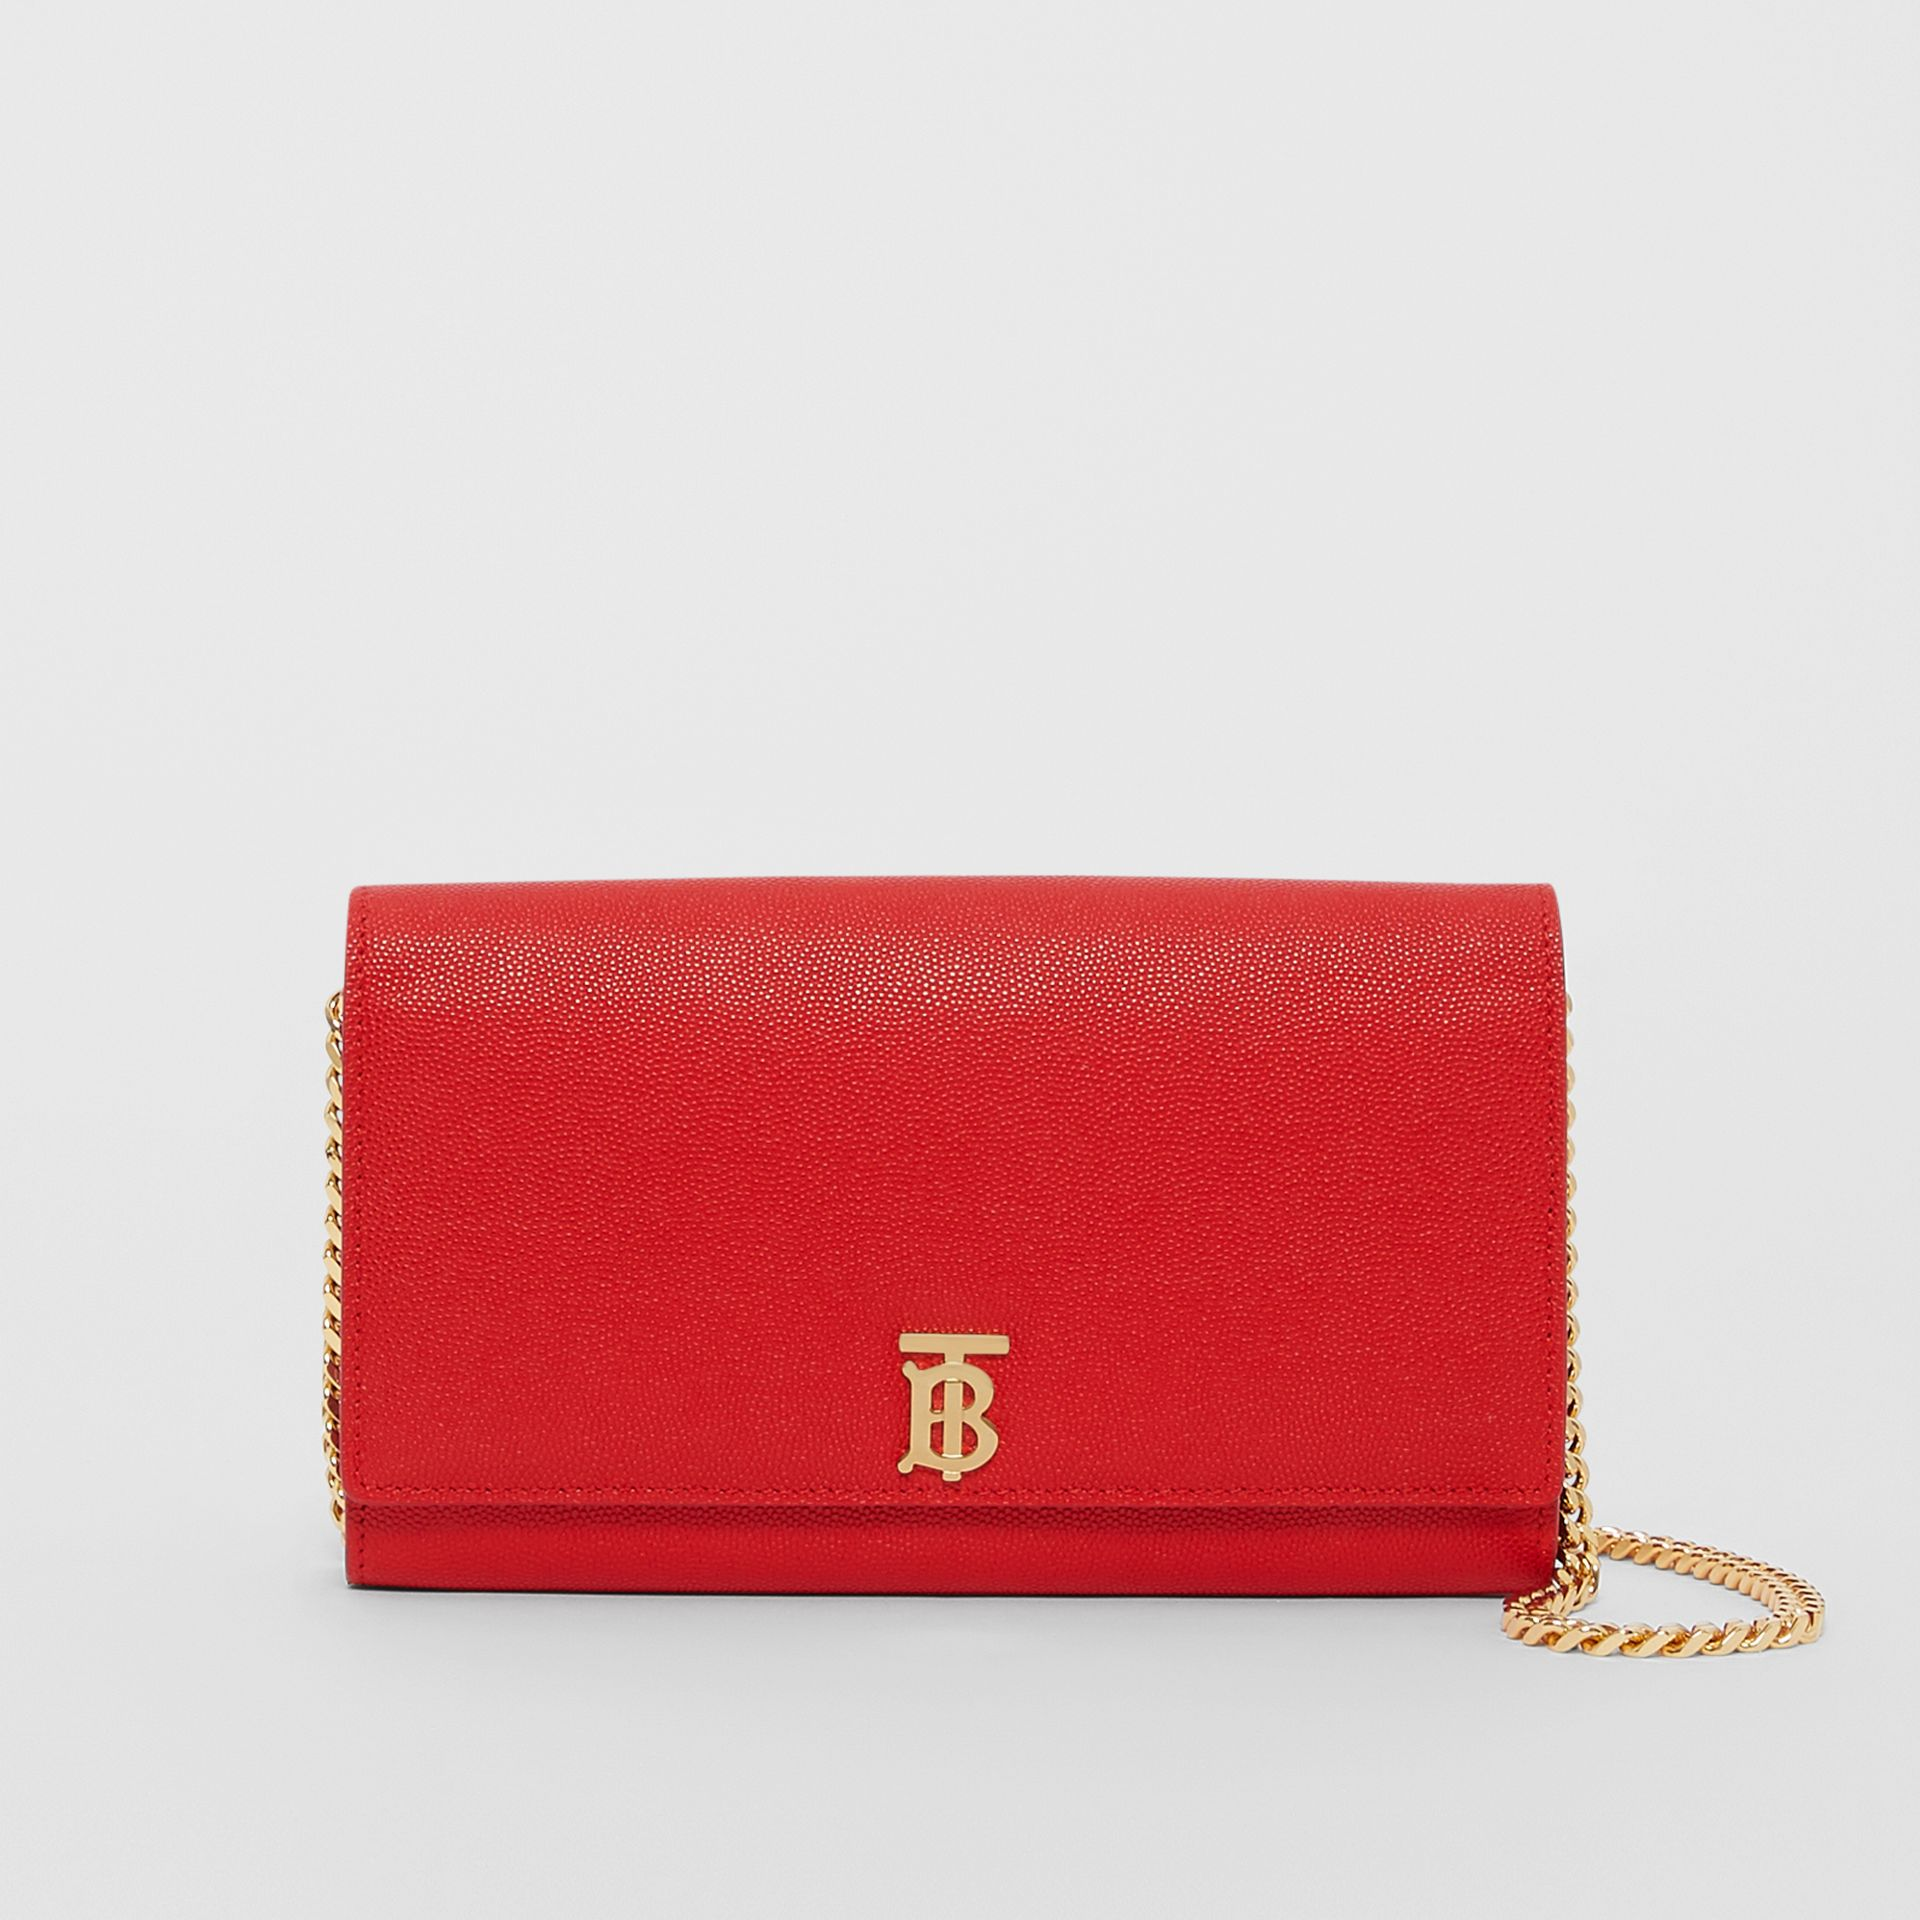 Monogram Motif Leather Wallet with Detachable Strap in Bright Red - Women | Burberry - gallery image 0